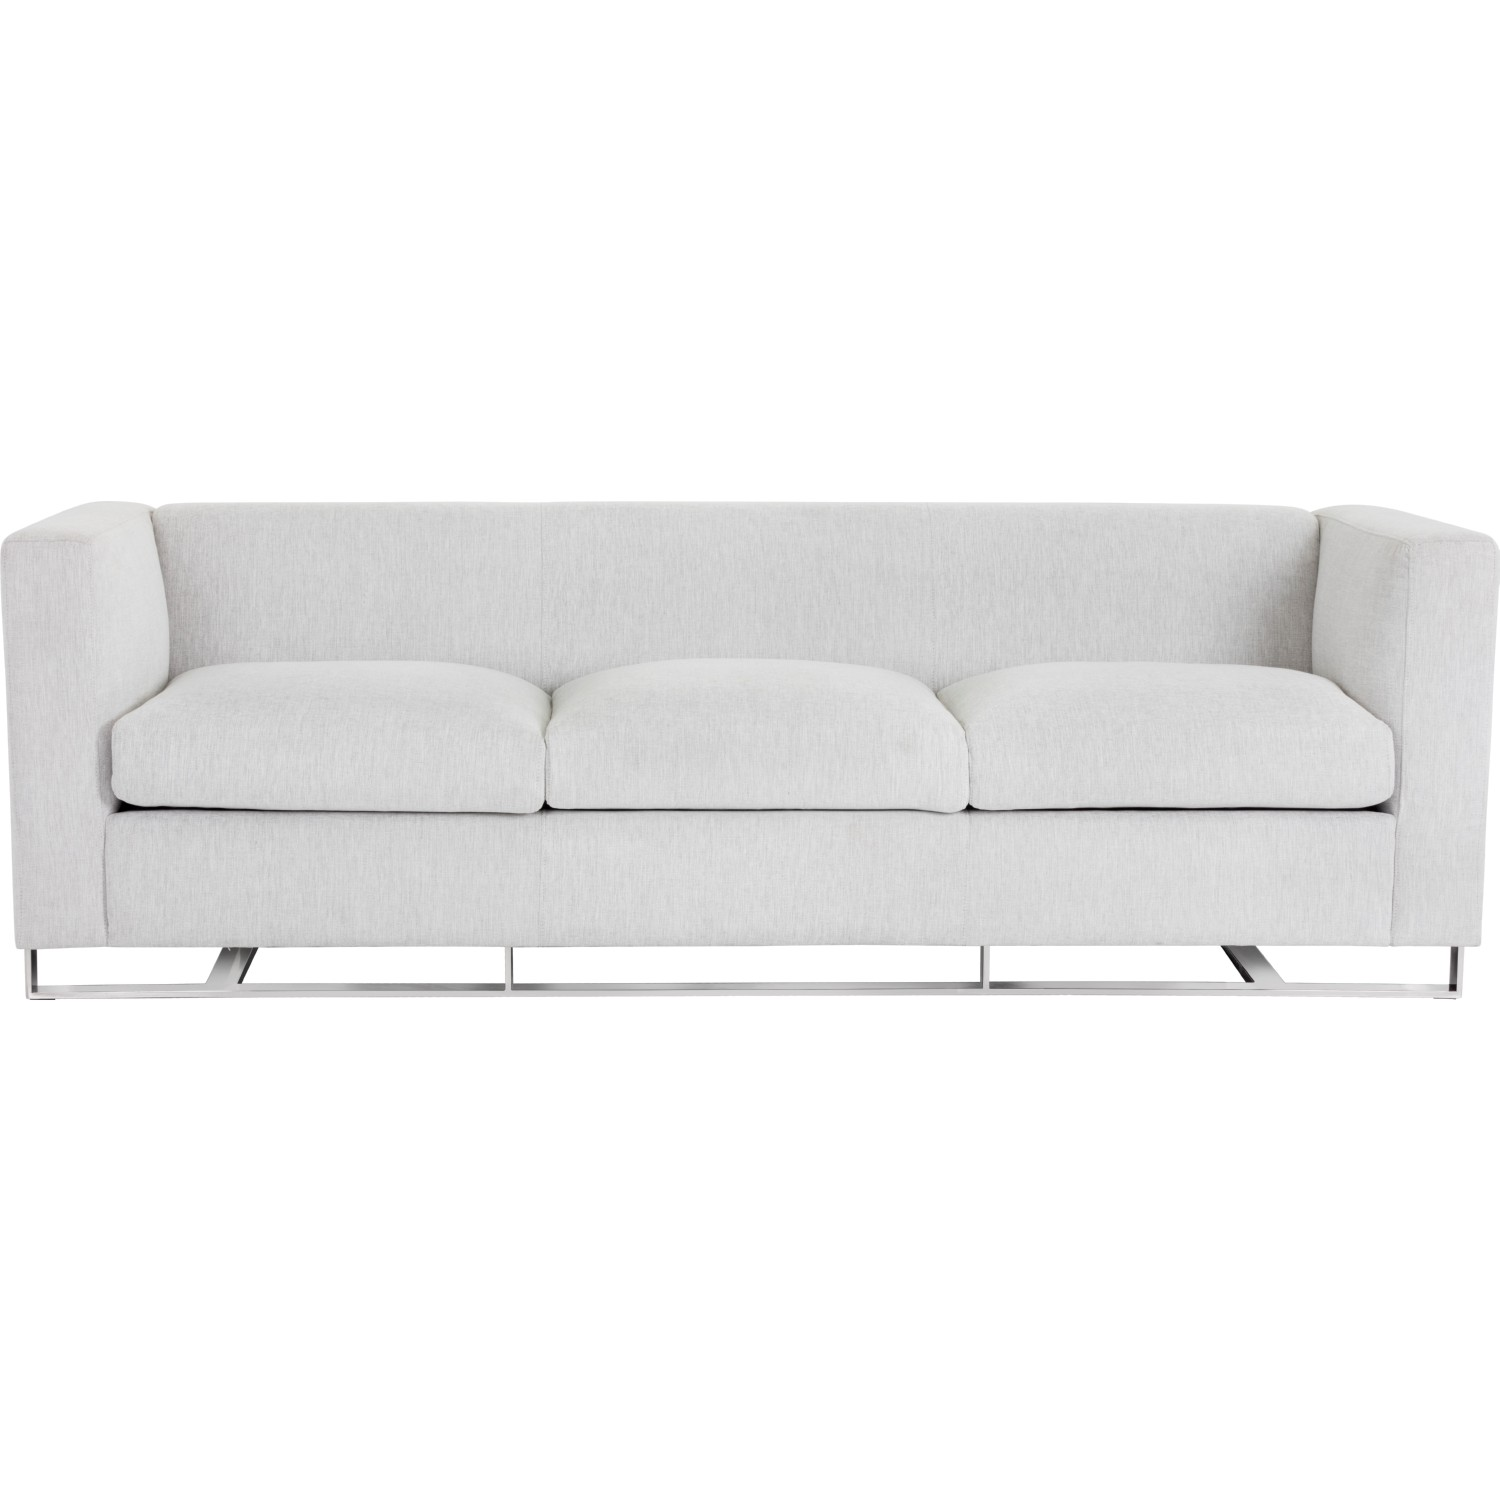 Keaton Sofa In Hemingway Marble Fabric On Polished Stainless Steel Frame